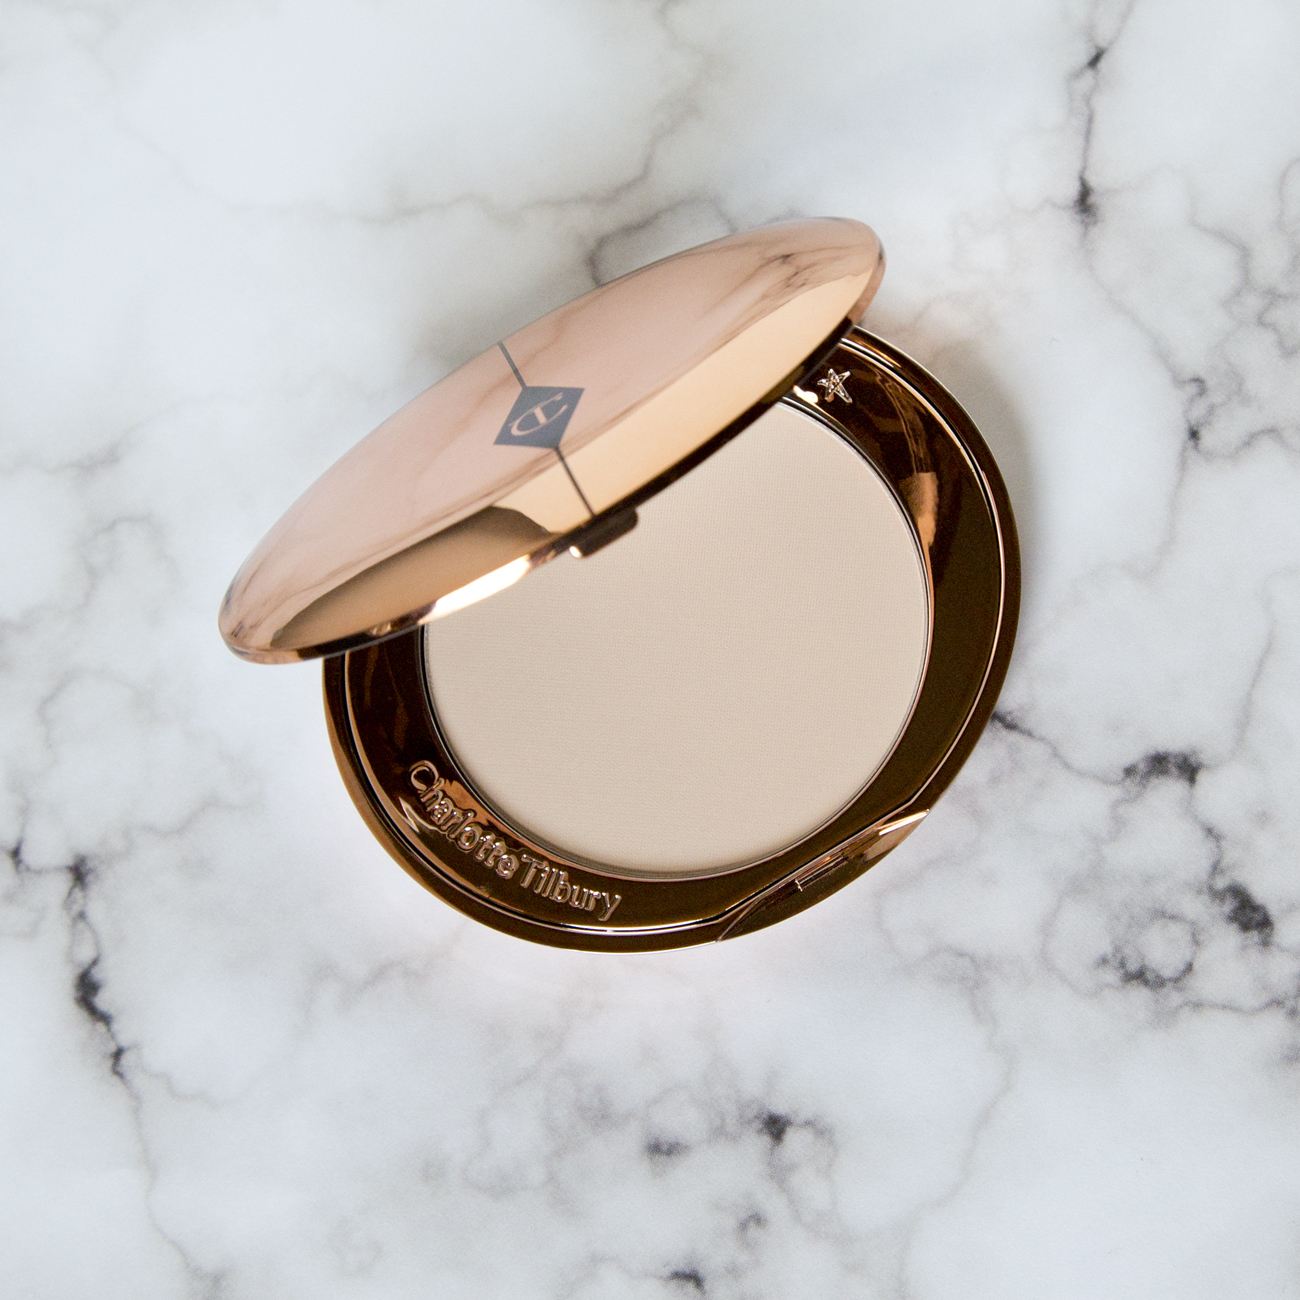 Charlotte Tilbury Airbrush Flawless Finish Powder in Fair   This is totally a YouTube made me buy it scenario. I have a ton of powders right now in pressed and loose formulas, five in total not counting this new one, so I really didn't need it but I wanted to see if the formula is as magical as everyone says it is. To say I had high hopes would be an understatement. As someone with dry skin who doesn't like to set their makeup too much I don't find this as wow-ing as YouTube told me it would be. I was hoping it wouldn't mattify my skin too much since it is so lightweight, major pro, but it did still make me look fairly matte. I do like it a lot more than some of my other powders that I currently own but it's not a must have for me. All in all I don't think it's a bad product and I'm glad I got it so I could try it but I think for my skin type/preference my favorite setting powder is the   Hourglass Ambient Lighting Powder    since I like a dewy to natural skin finish.I ended up getting this for $40.50 from the retailer Feel Unique by using Charlotte Tilbury as my   Brand for Life  (a promo where you get 10% off any brand you select for the next six months). I wouldn't necessarily recommend Feel Unique since their shipping to the states takes almost a month which is absolutely ridiculous in my opinion.